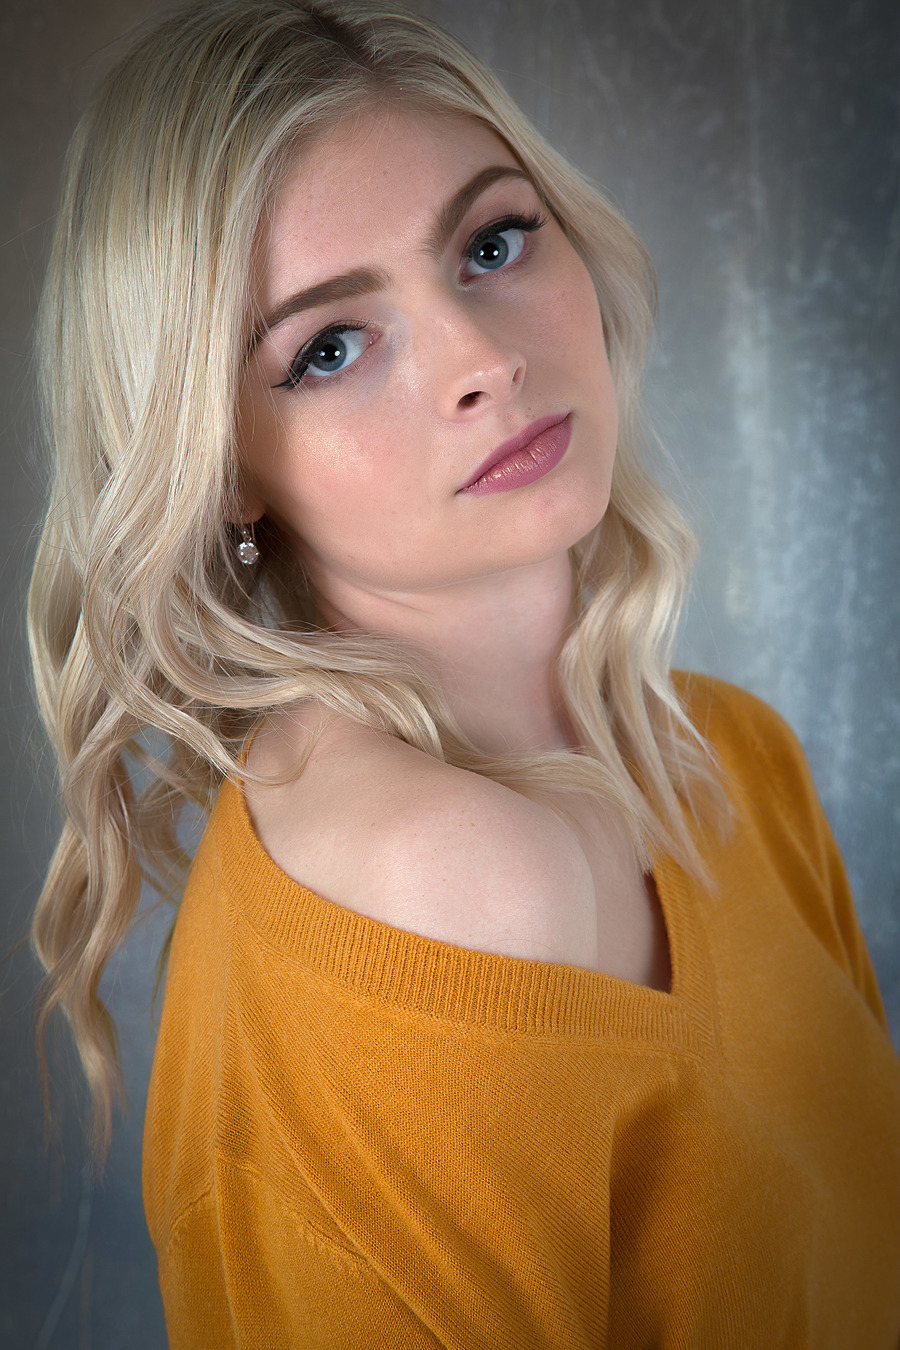 Photography by ZebraRosso, Model Charlotte Laugher, Taken at Butterfly Studios Norwich / Uploaded 11th February 2020 @ 05:35 PM